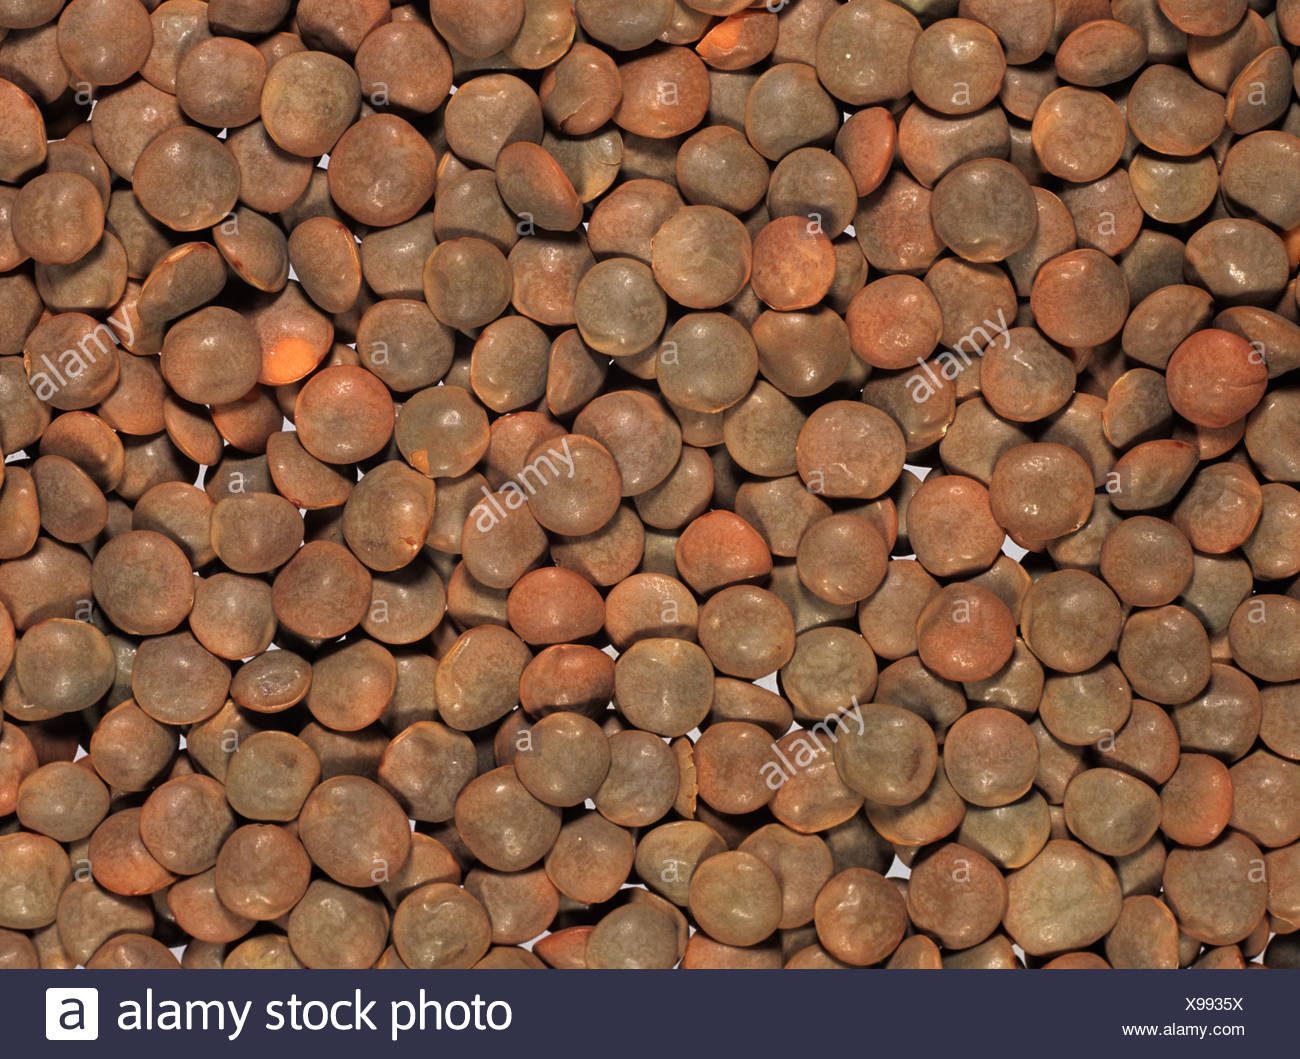 Brown lentils (Lens culinaris) prepared for cooking, produce of Turkey - Stock Image